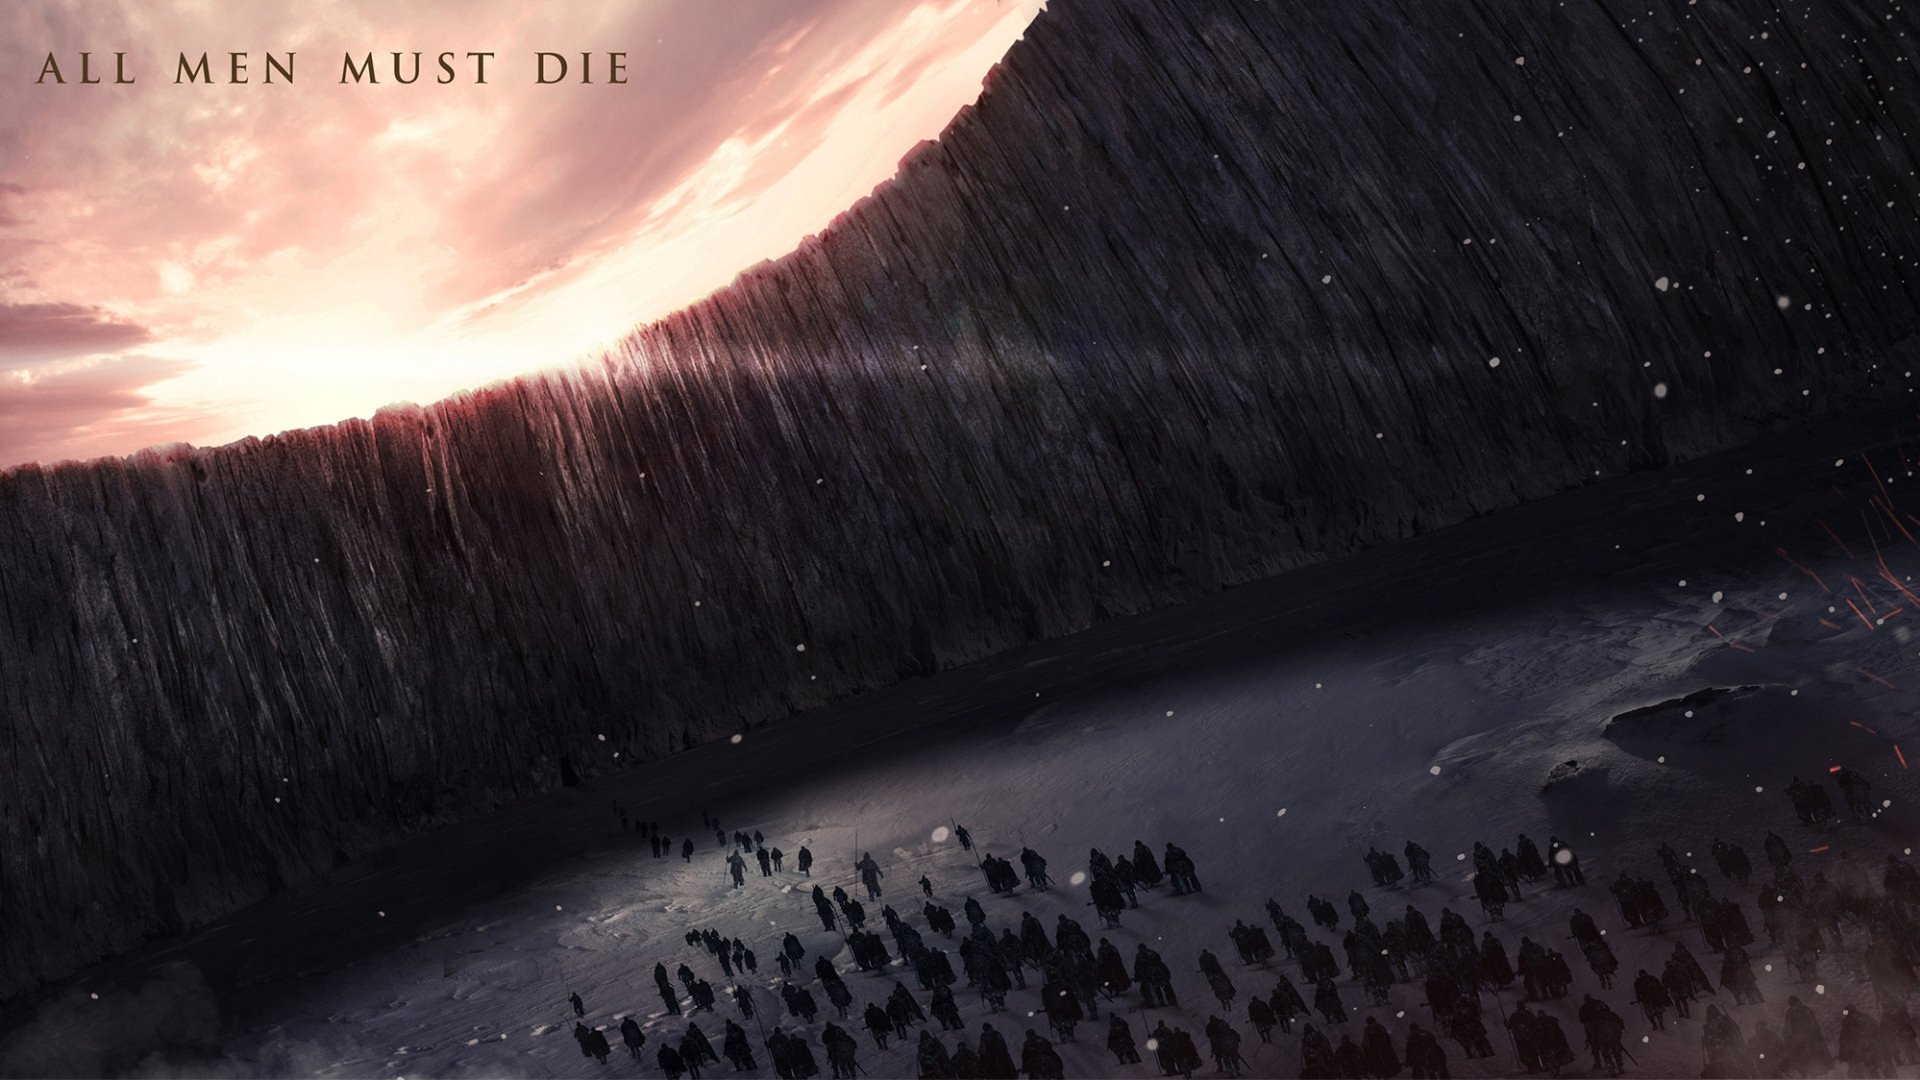 Game of Thrones   Game of Thrones Wallpaper 1920x1080 41318 1920x1080